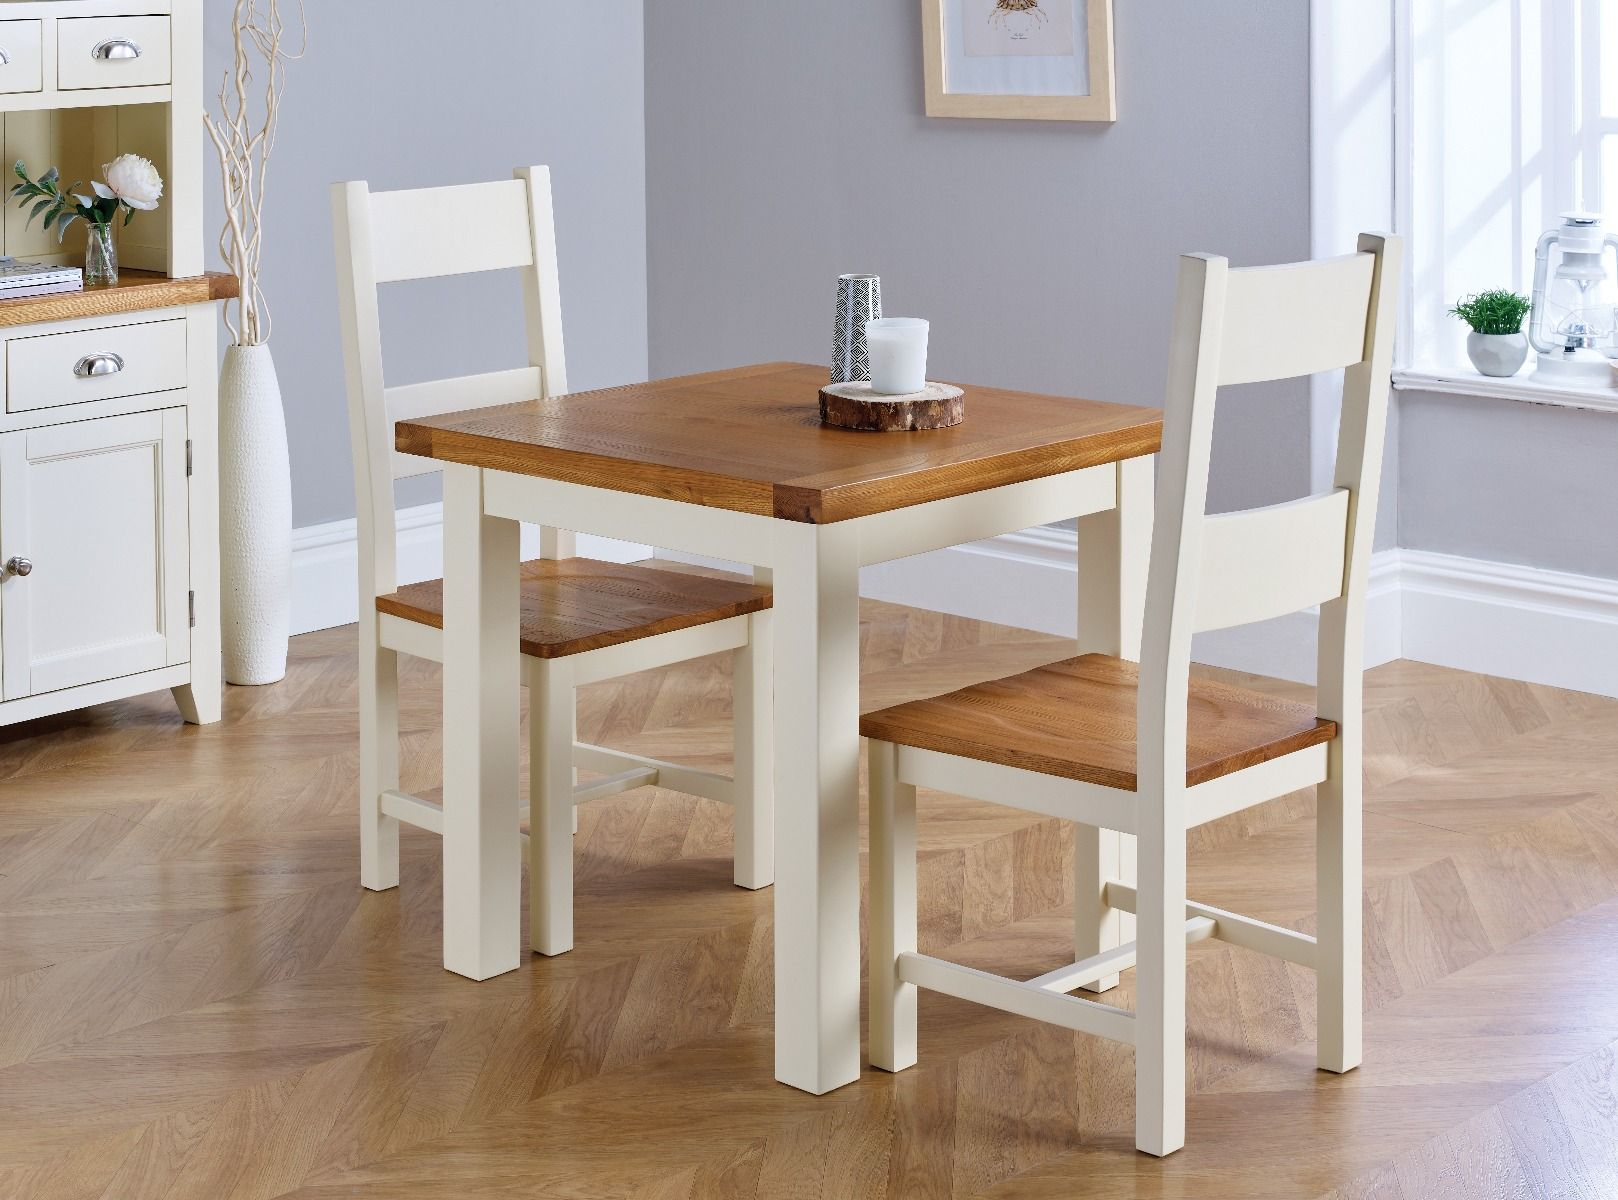 Small Cream Painted Square Oak Dining Table - Free Delivery | Top Furniture & Small Cream Painted Square Oak Dining Table - Free Delivery | Top ...